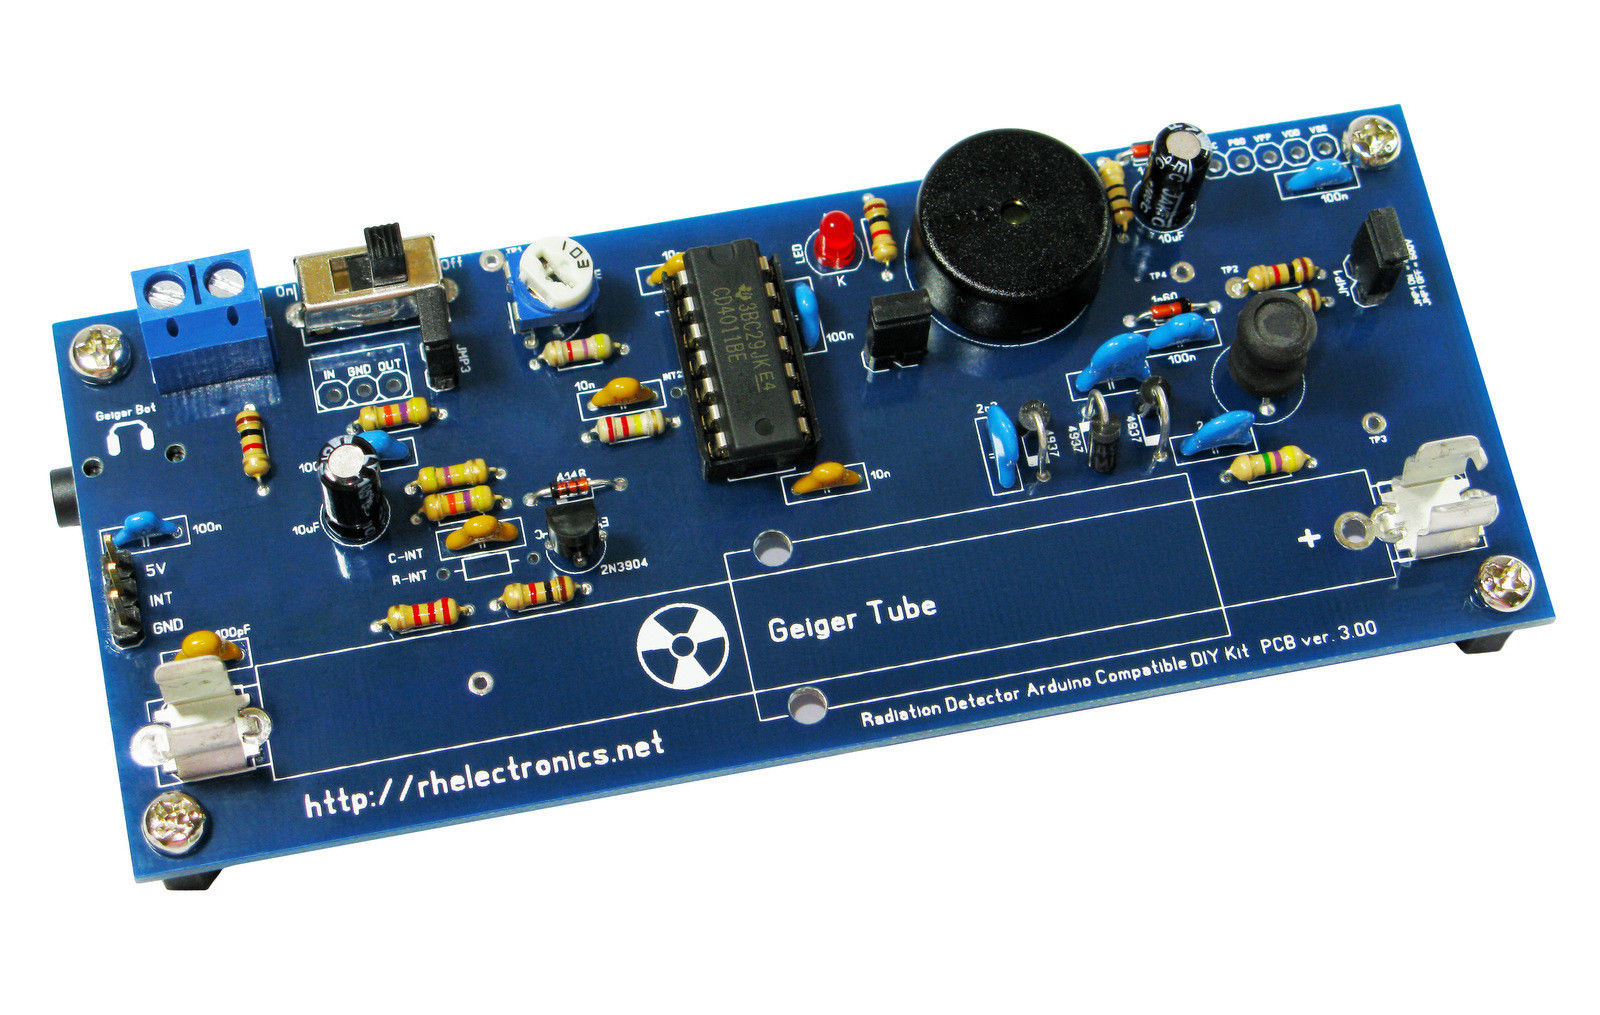 Radiation Detector DIY Kit ver.3